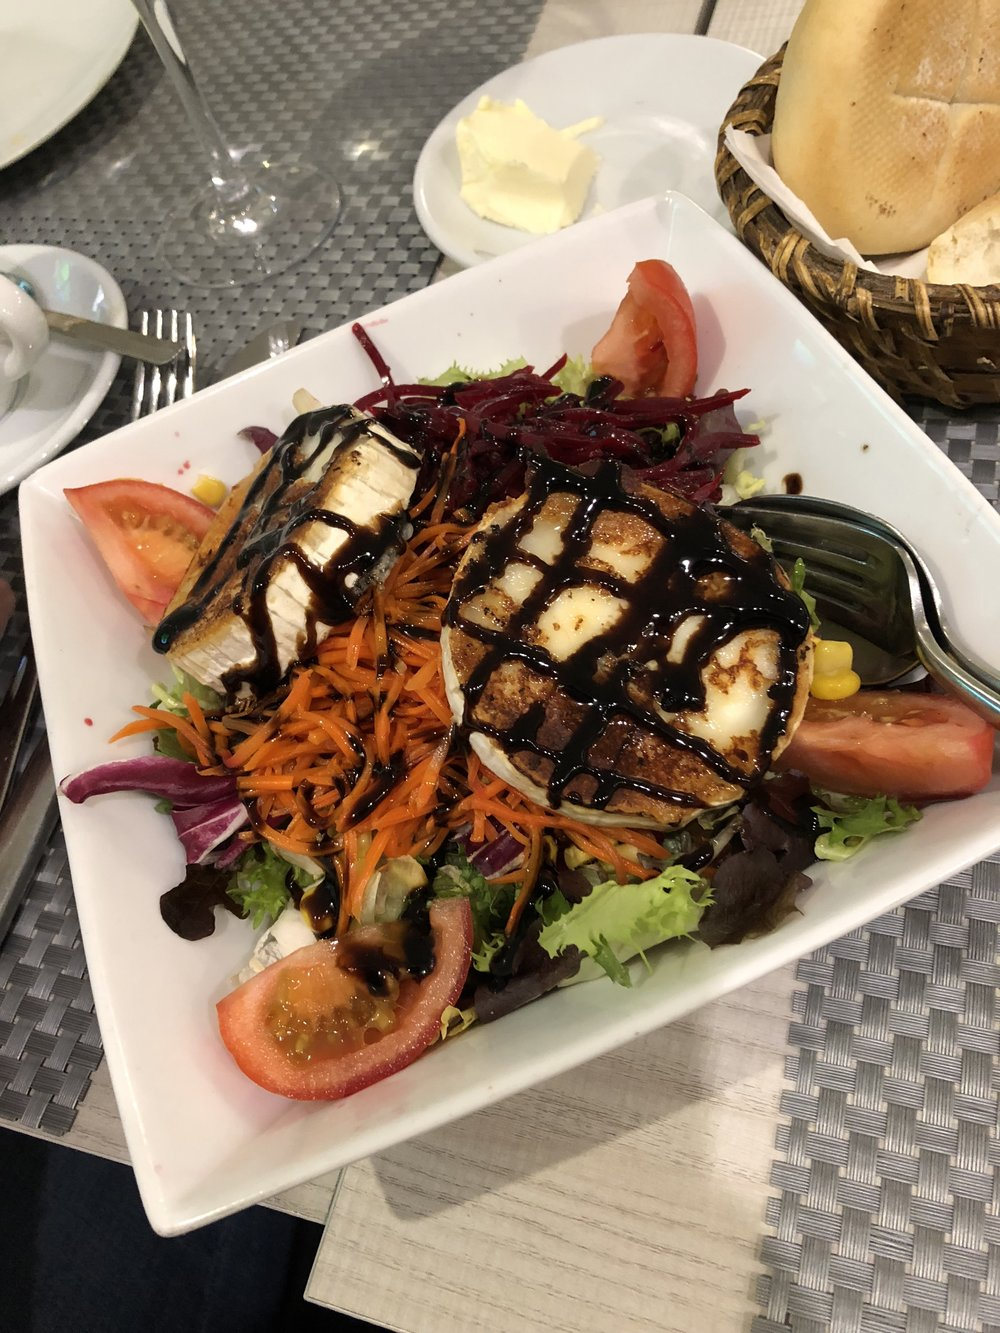 Incredible Goat Cheese Salad from Restaurante Calidade.